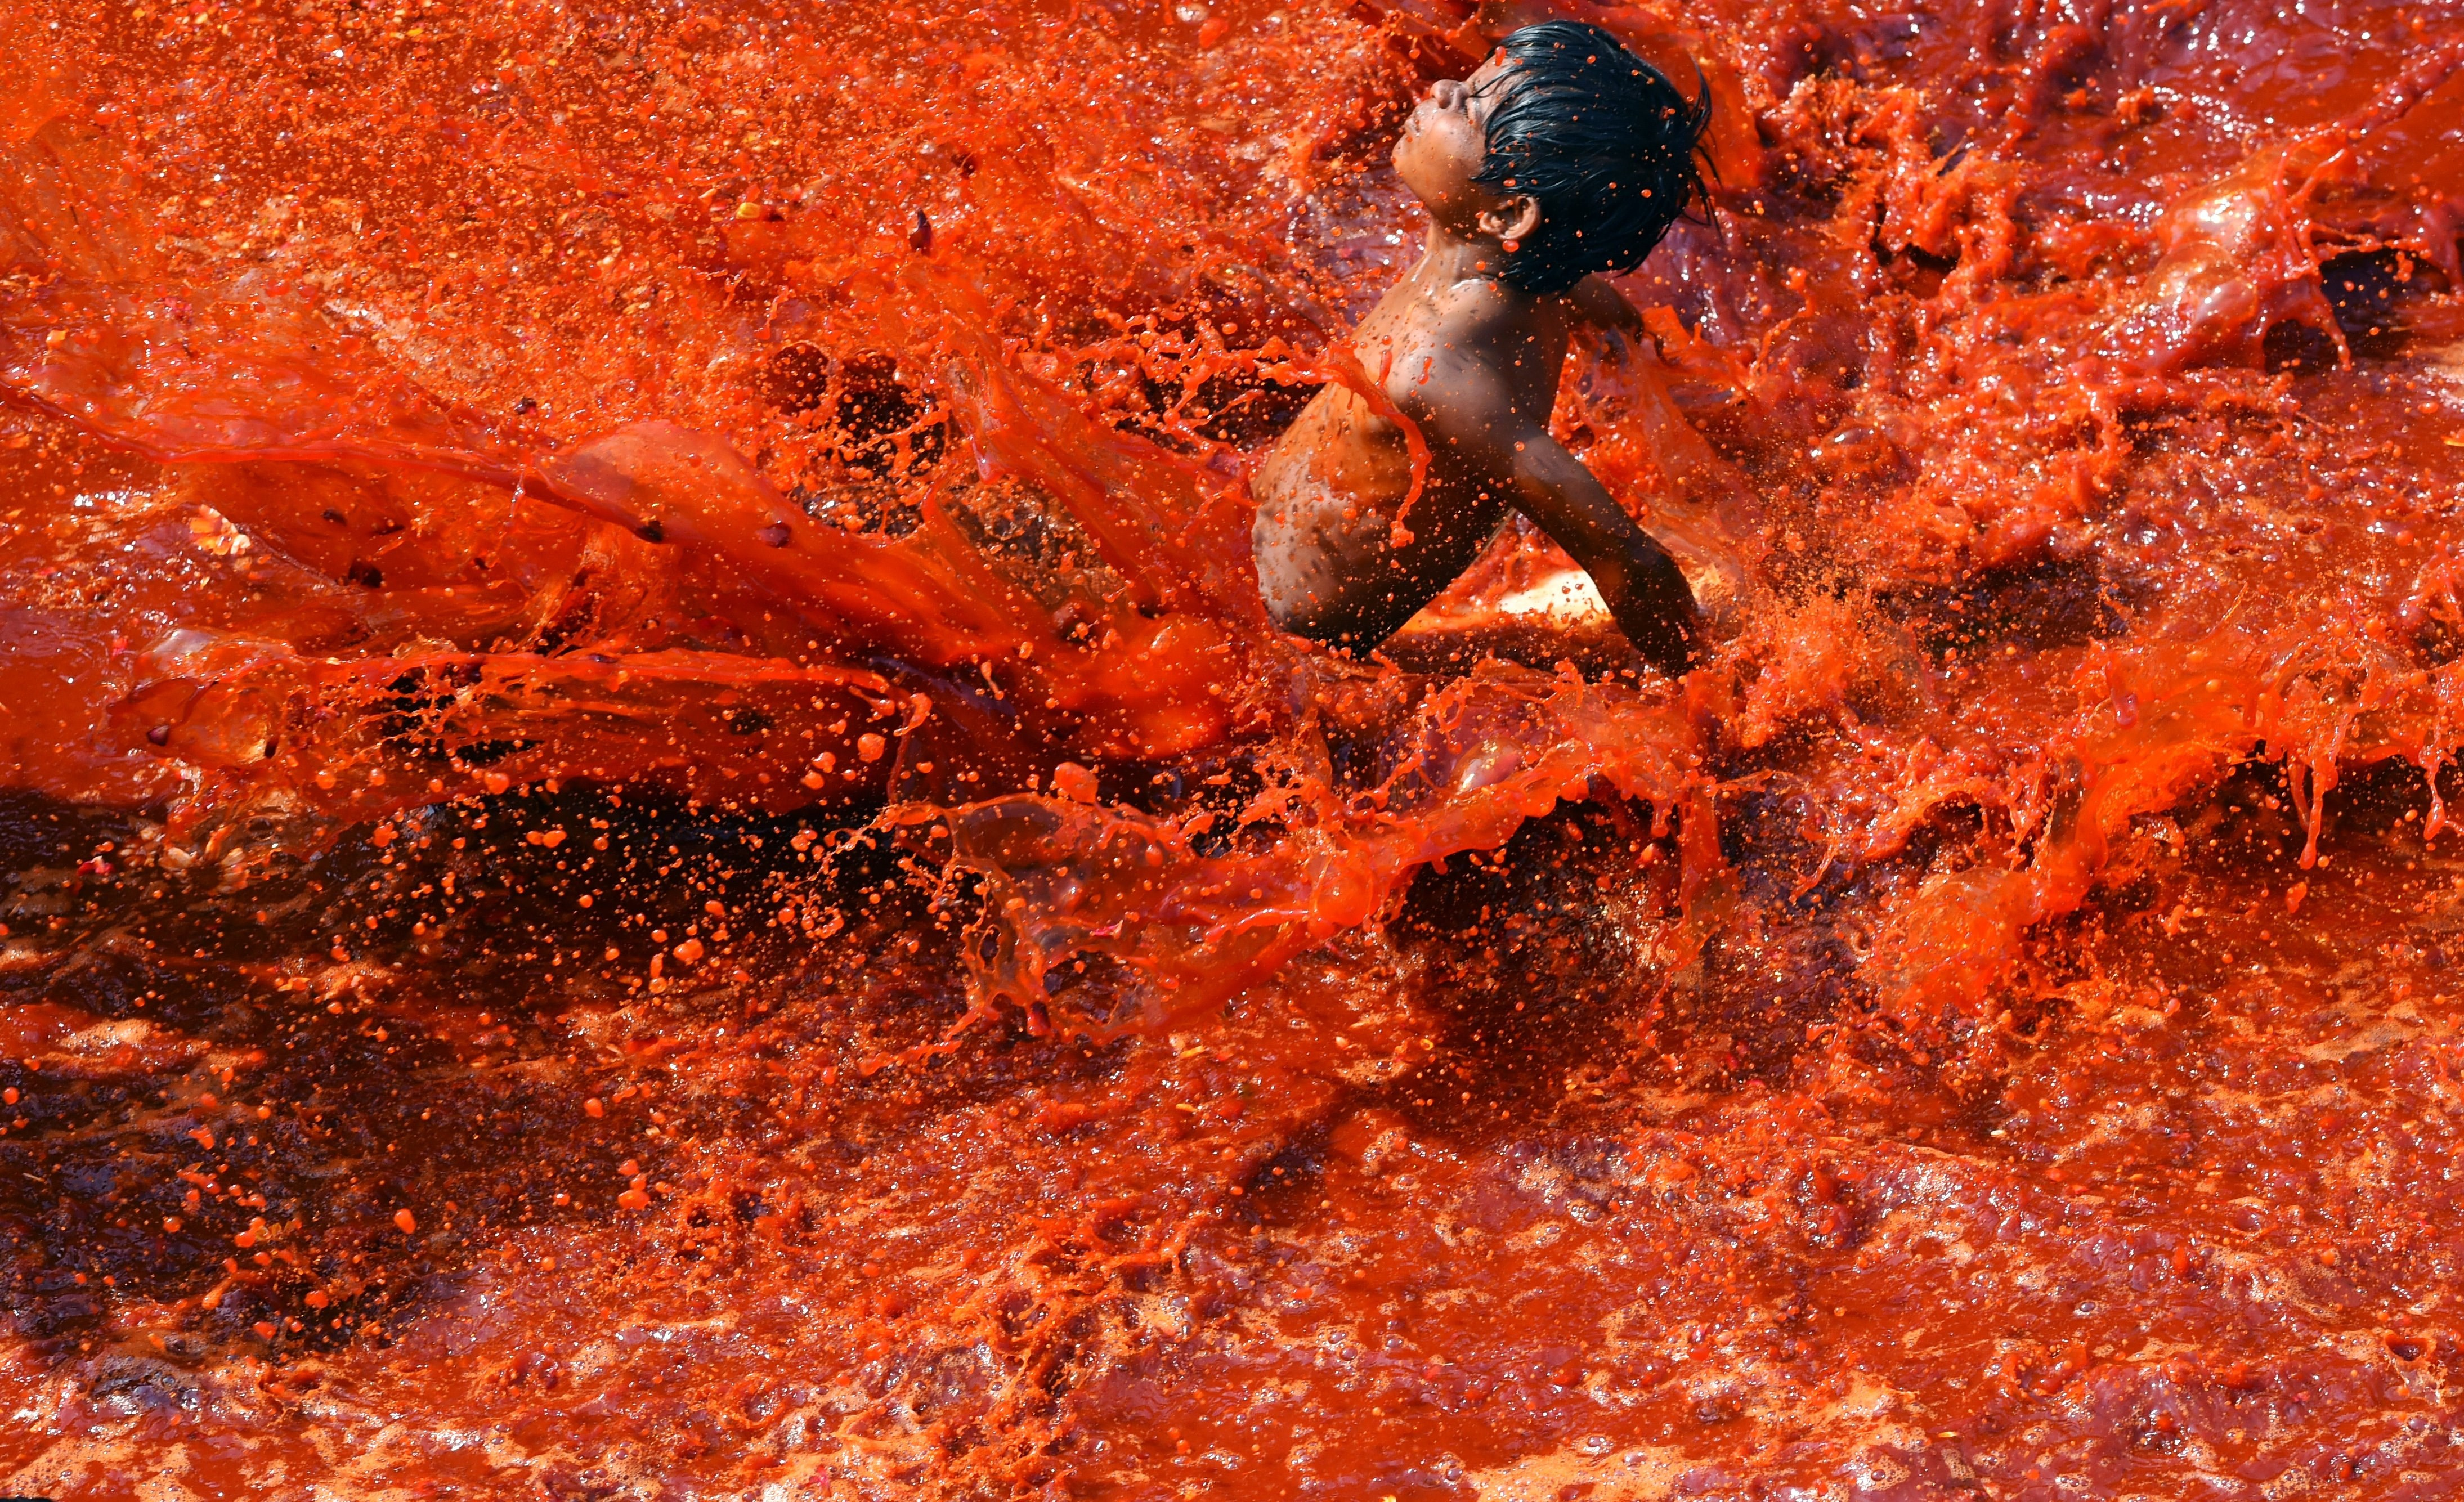 An Indian boy slides in the remnant water left after a large crowd of men and women participated in the Dadjee ka Huranga festivities in the north Indian town of Baldeo on March 7, 2015. Photo by ROBERTO SCHMIDT/AFP/Getty Images.